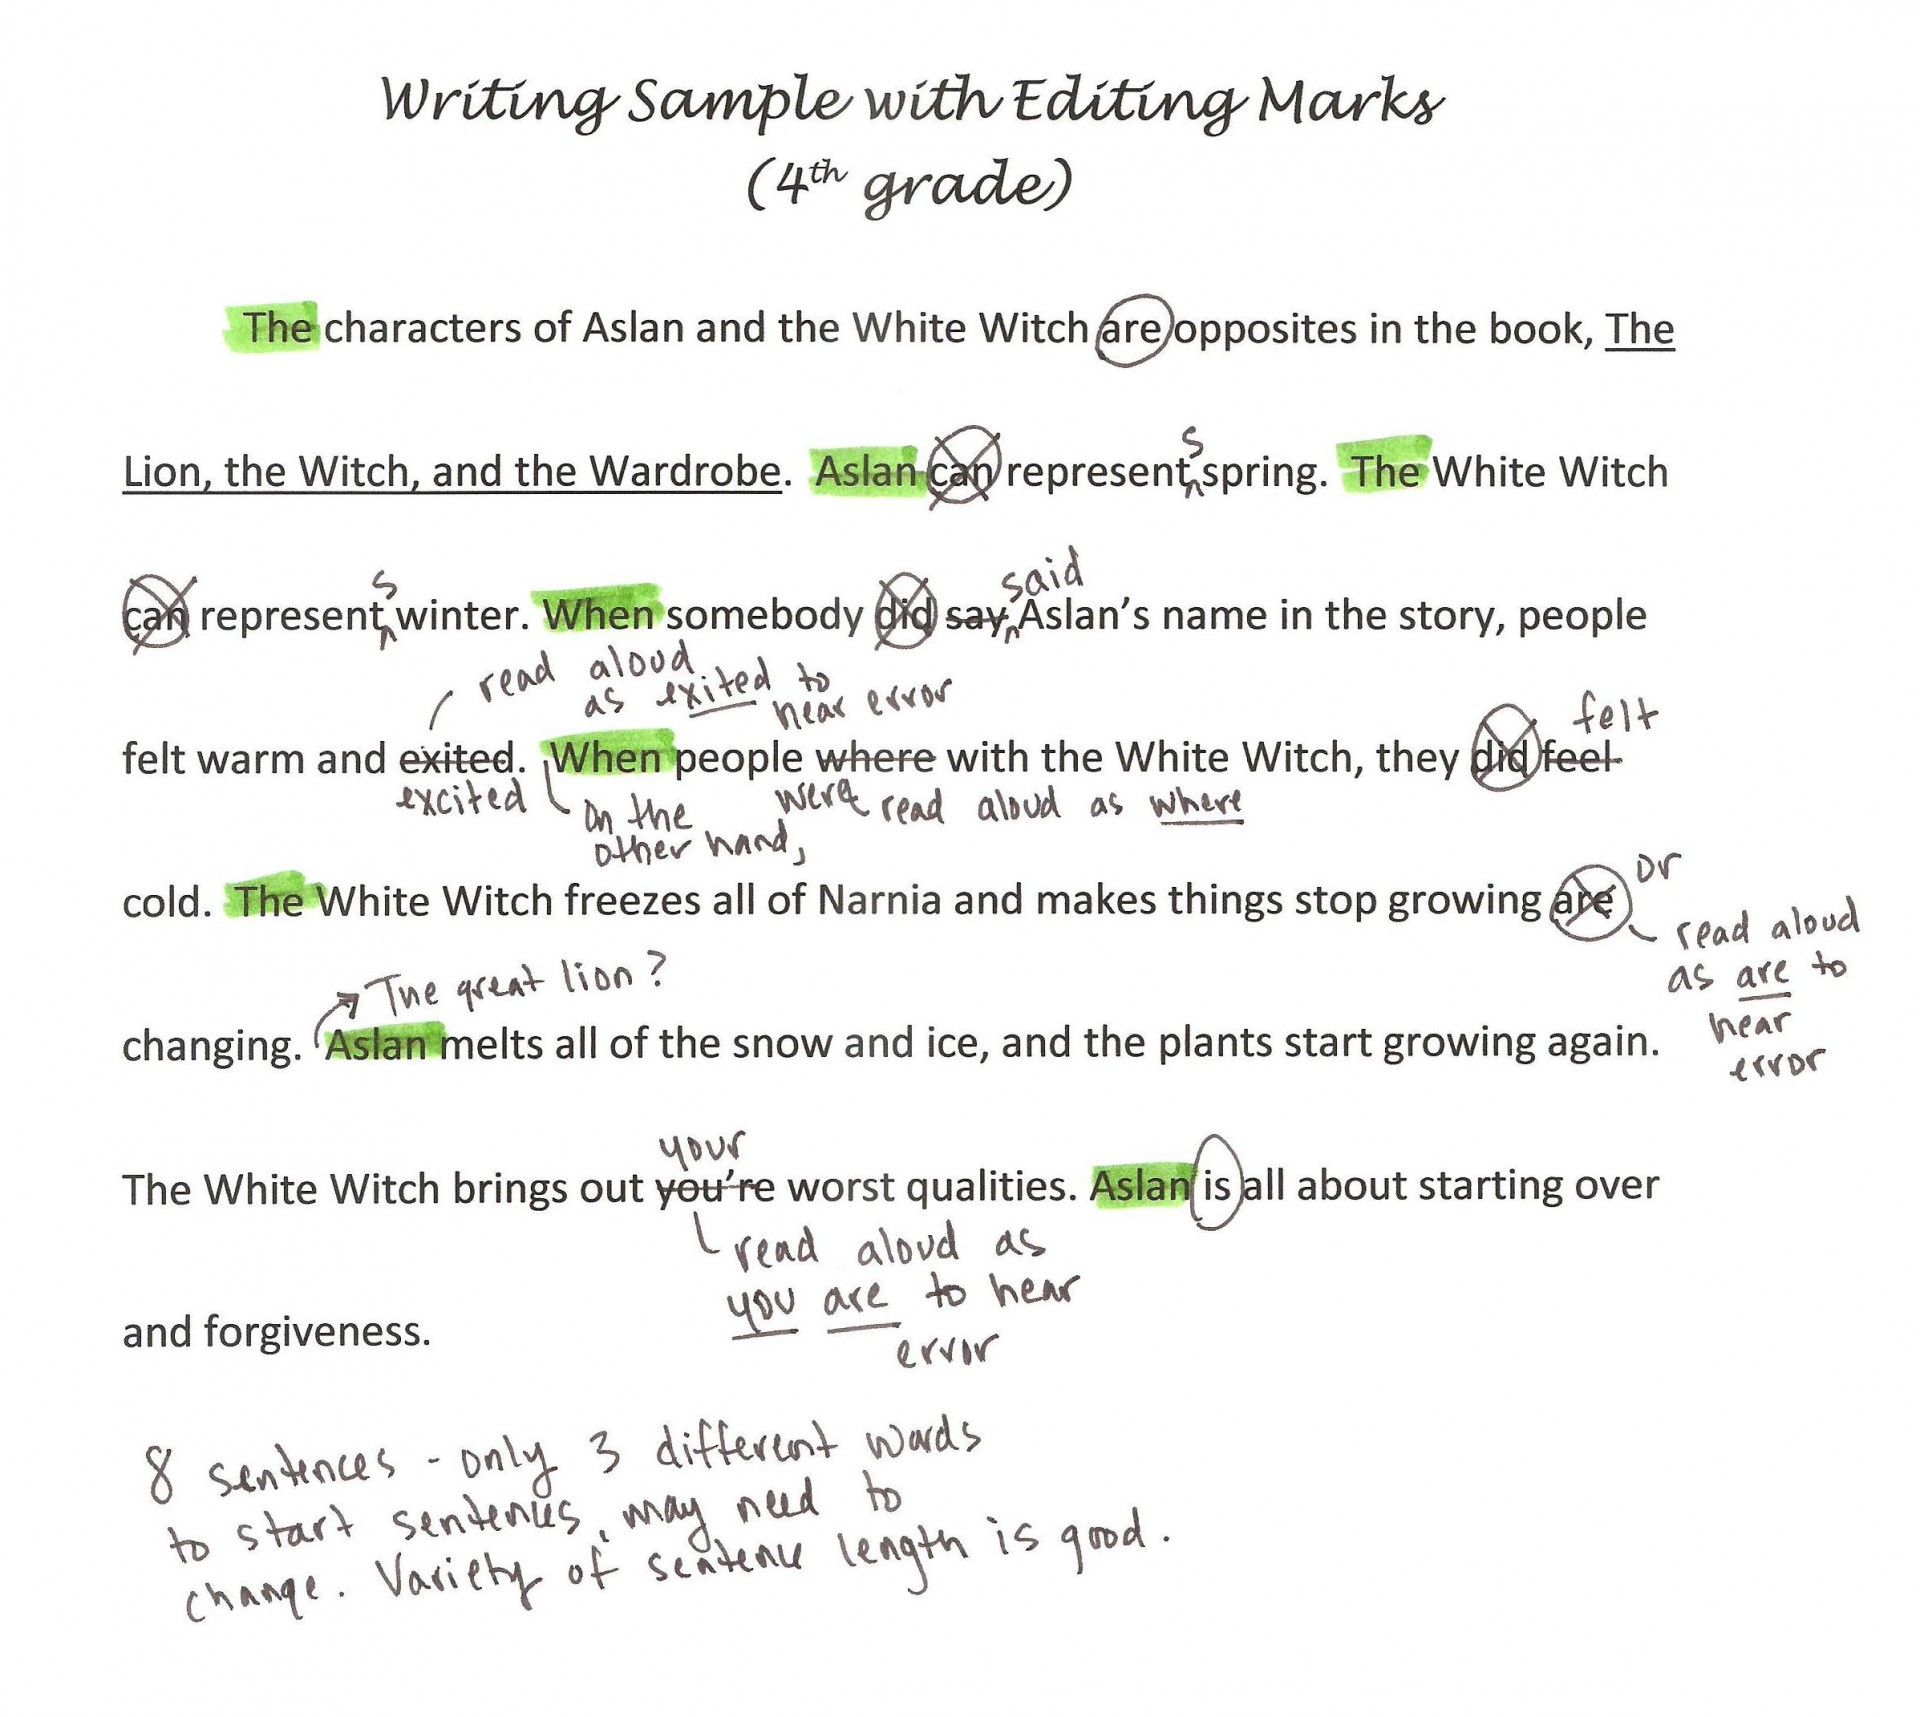 003 Essay Editor Writing Sample With Editing Marks1 Marvelous Service Generator Free 1920